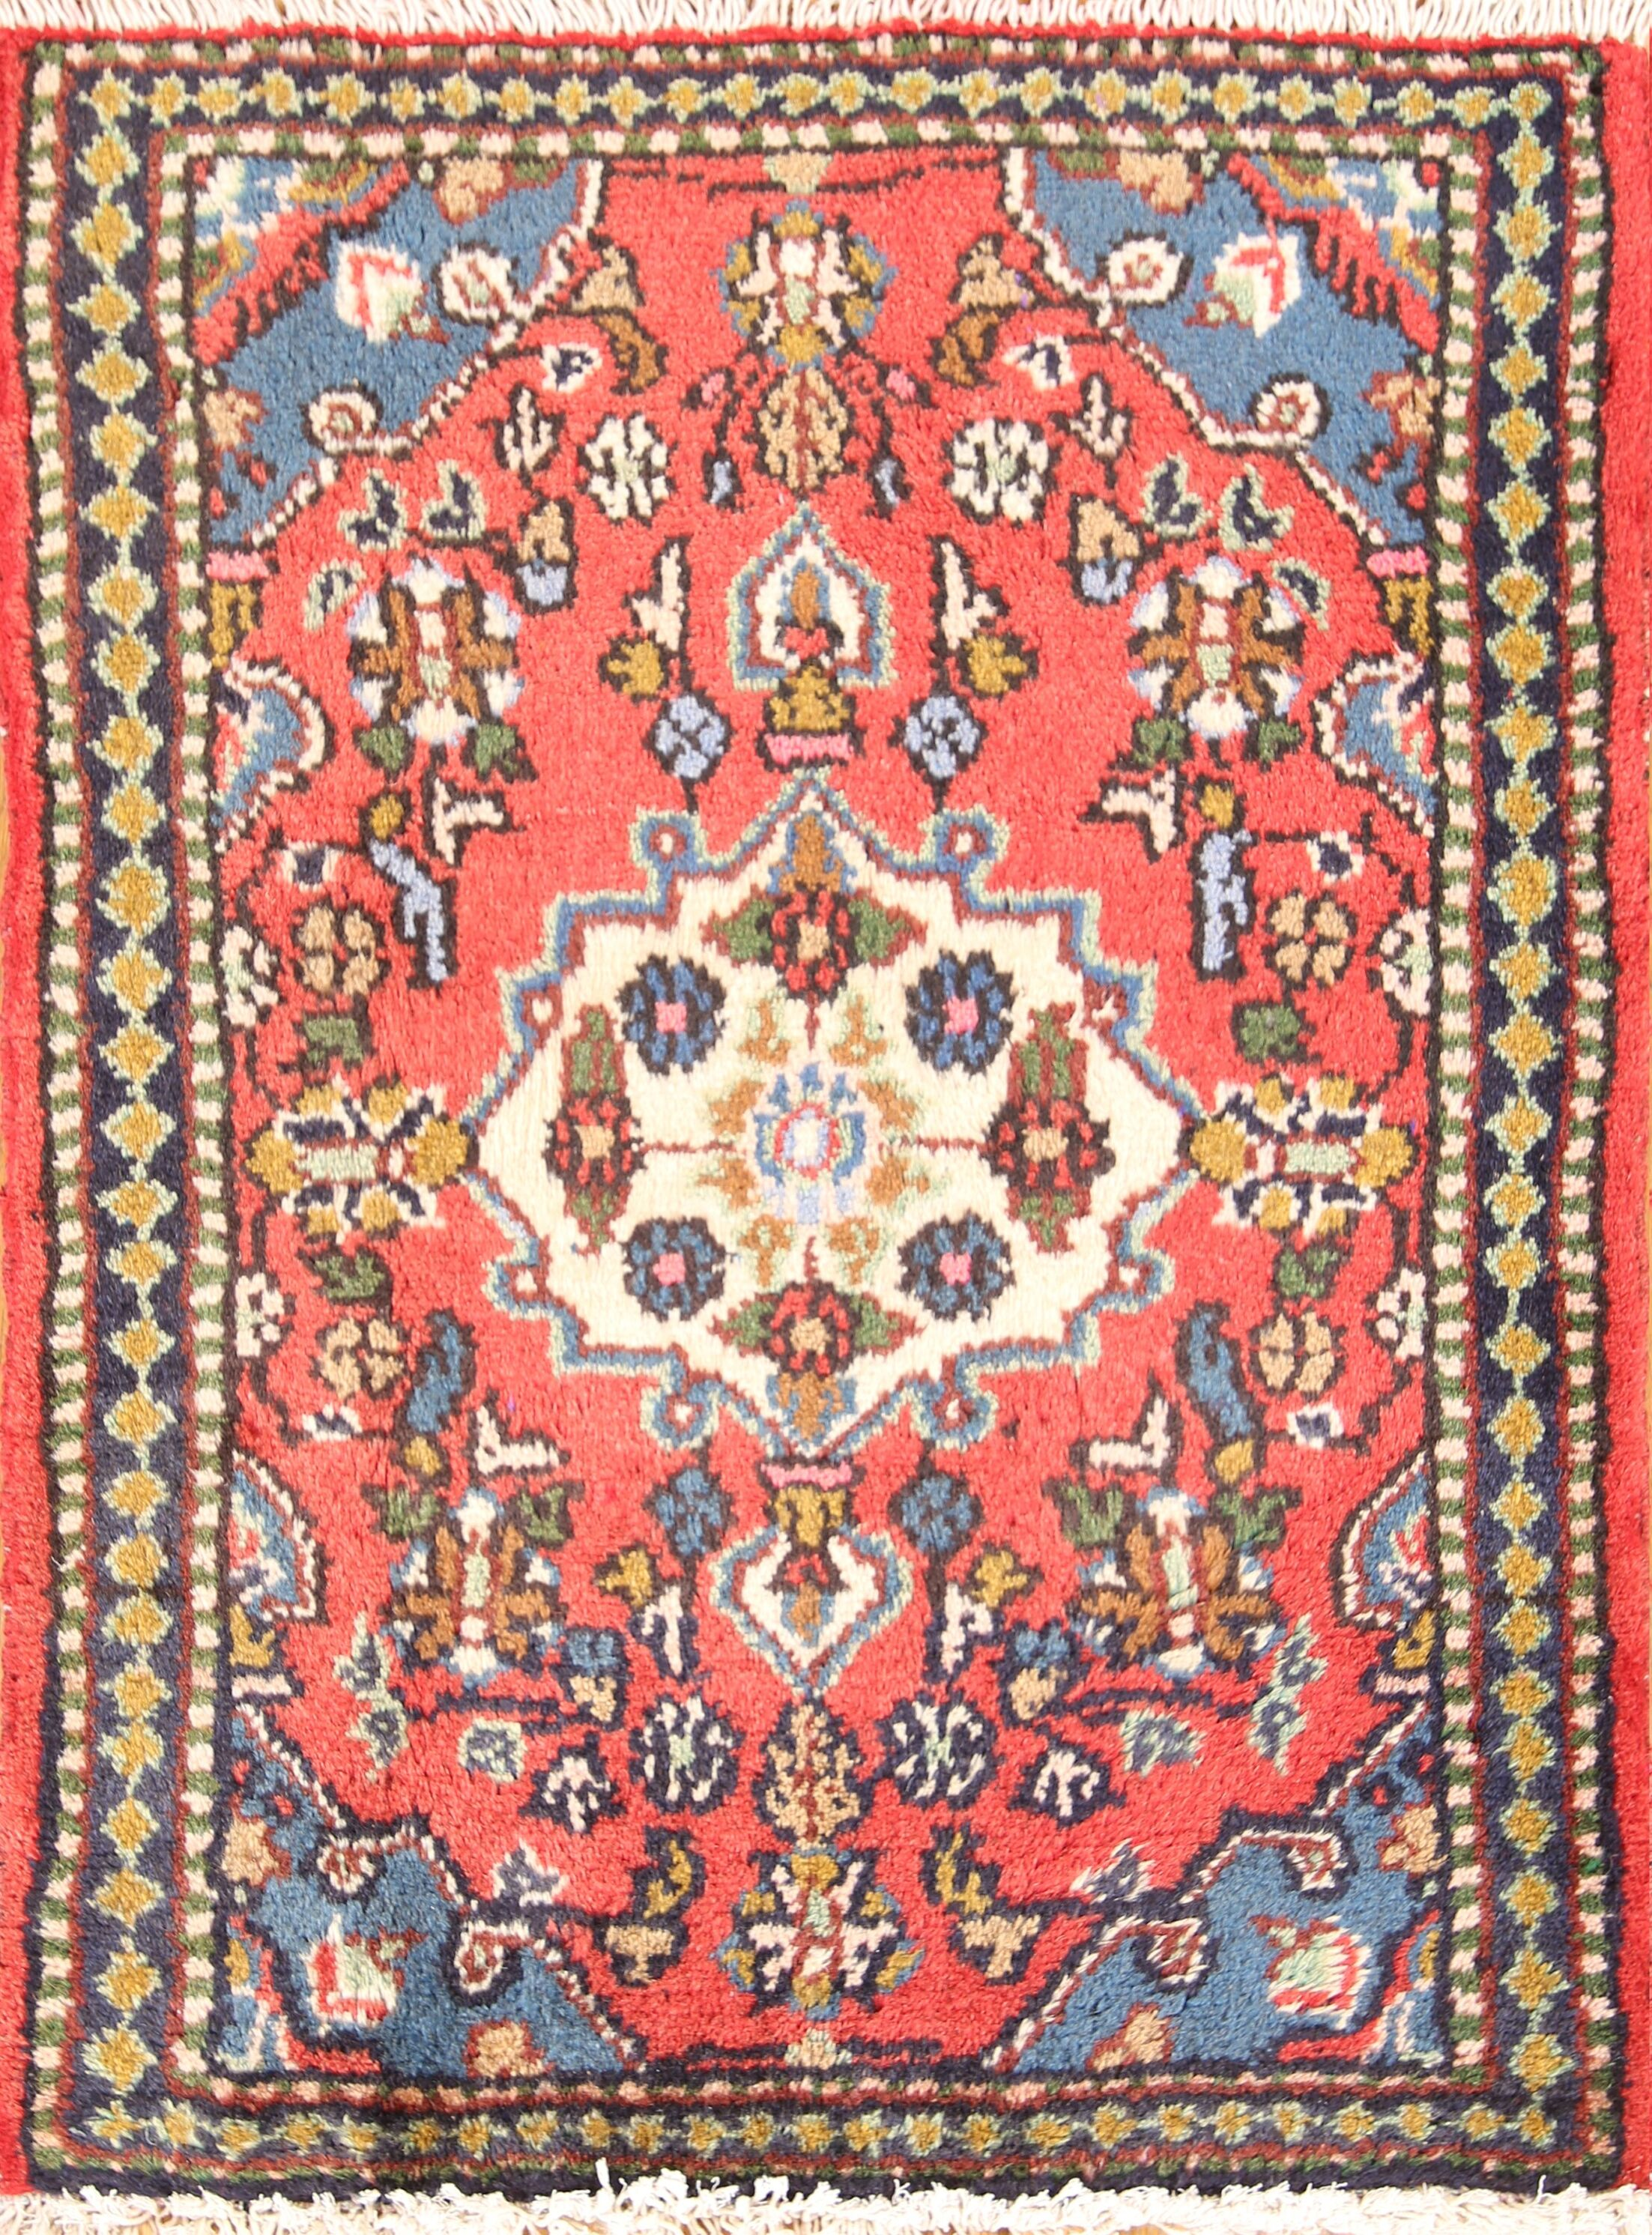 One-of-a-Kind Hamedan Vintage Persian Traditional Hand-Knotted 1'10